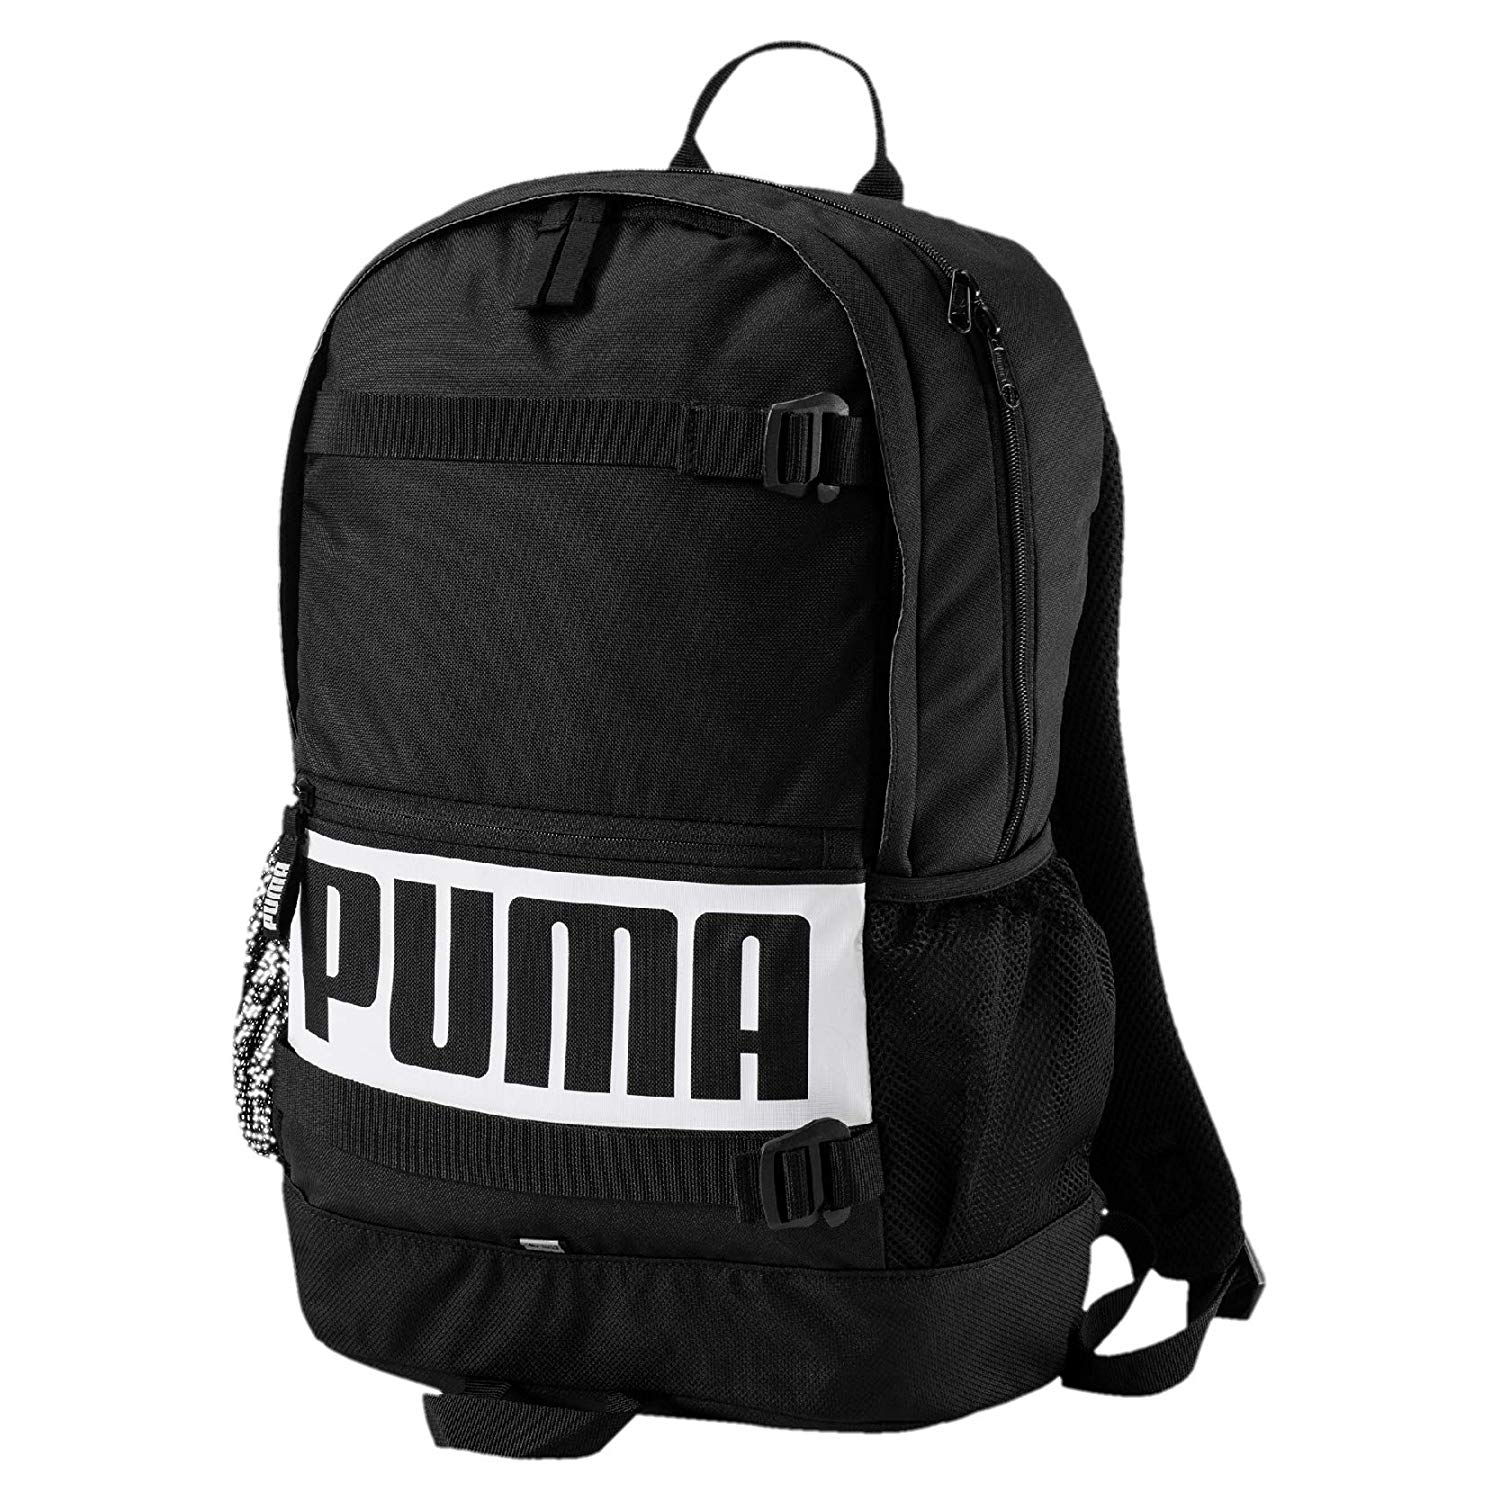 Puma Deck Backpack 24L